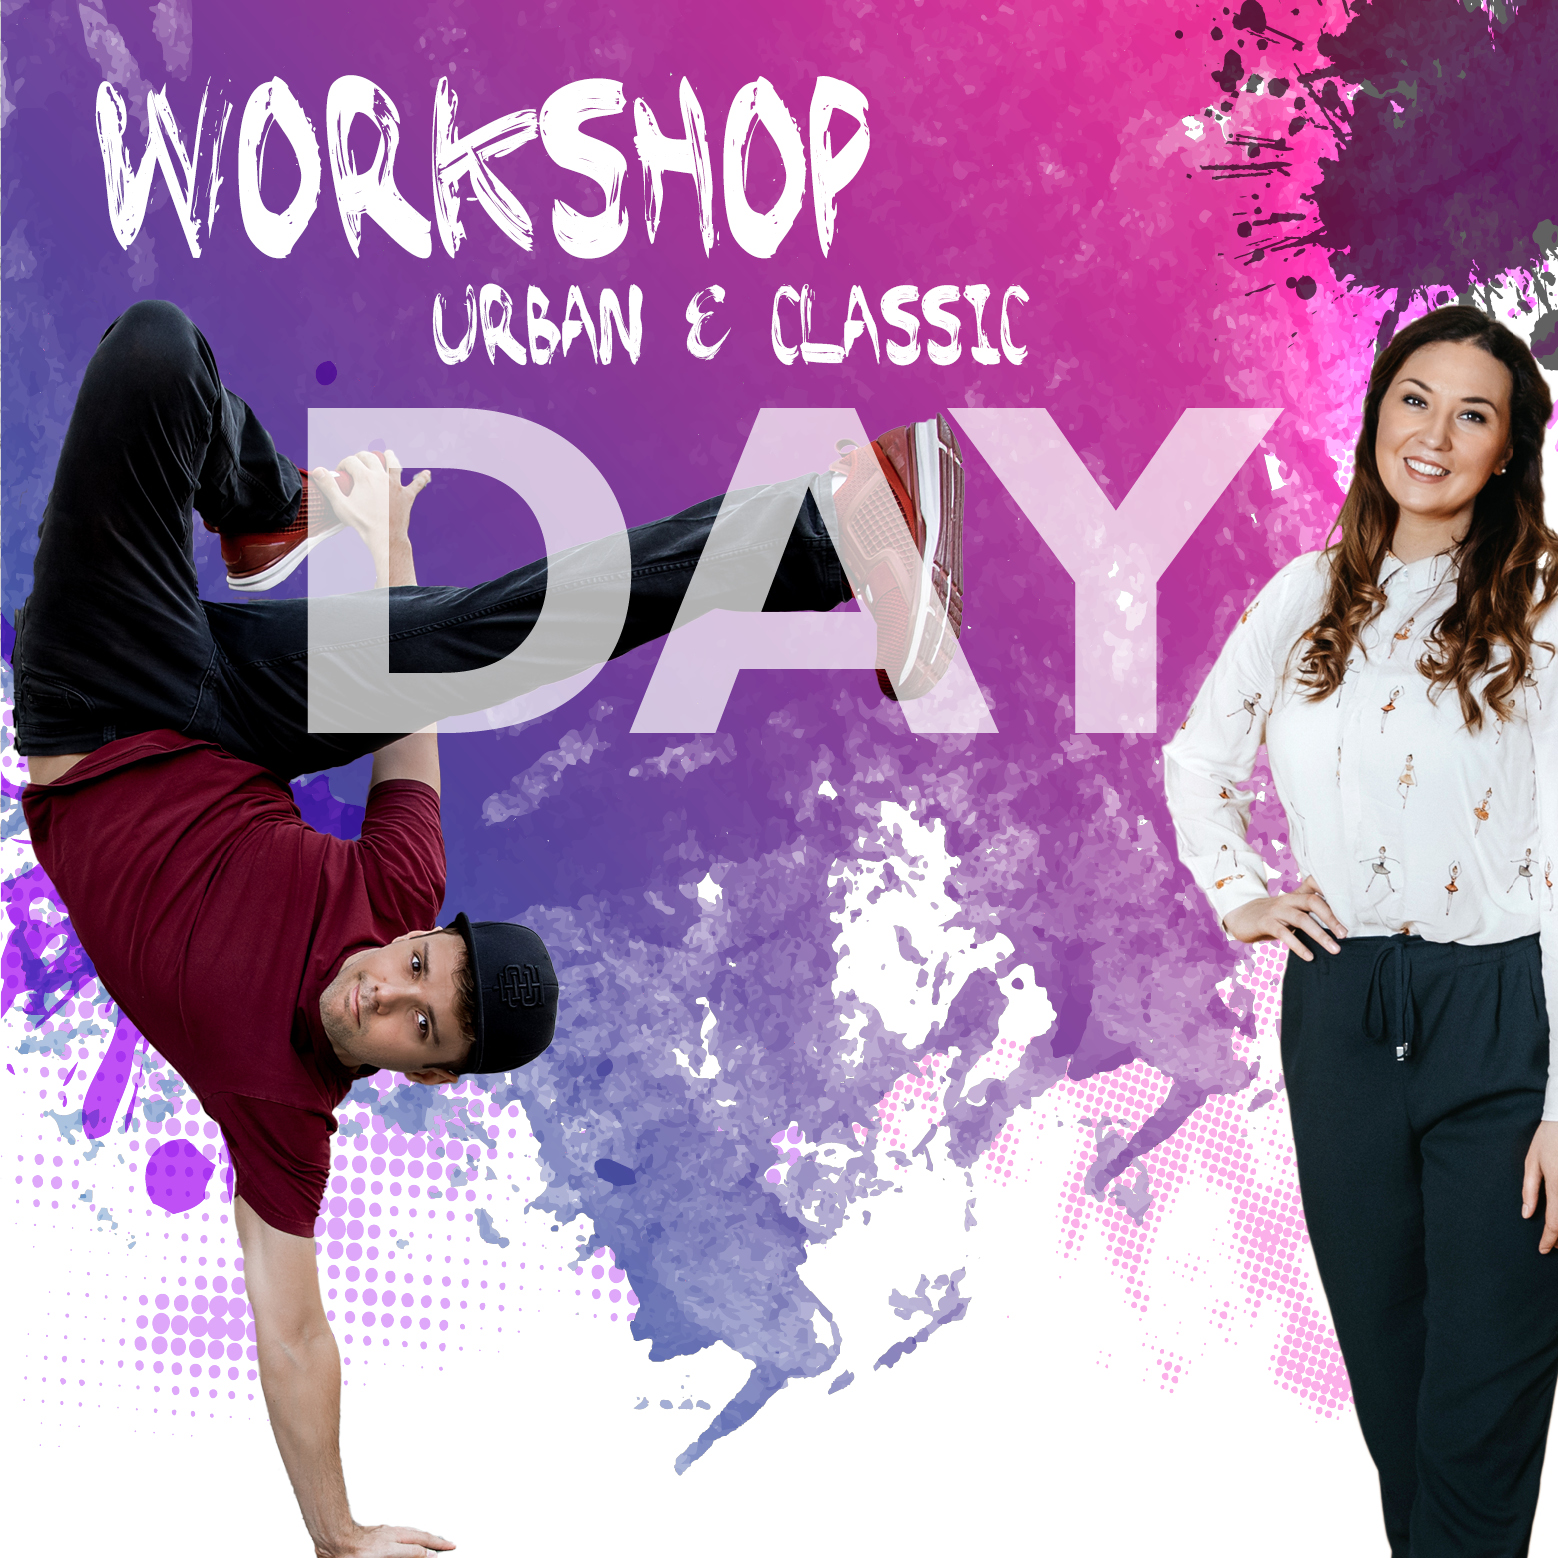 Urban & Classic Workshop Day